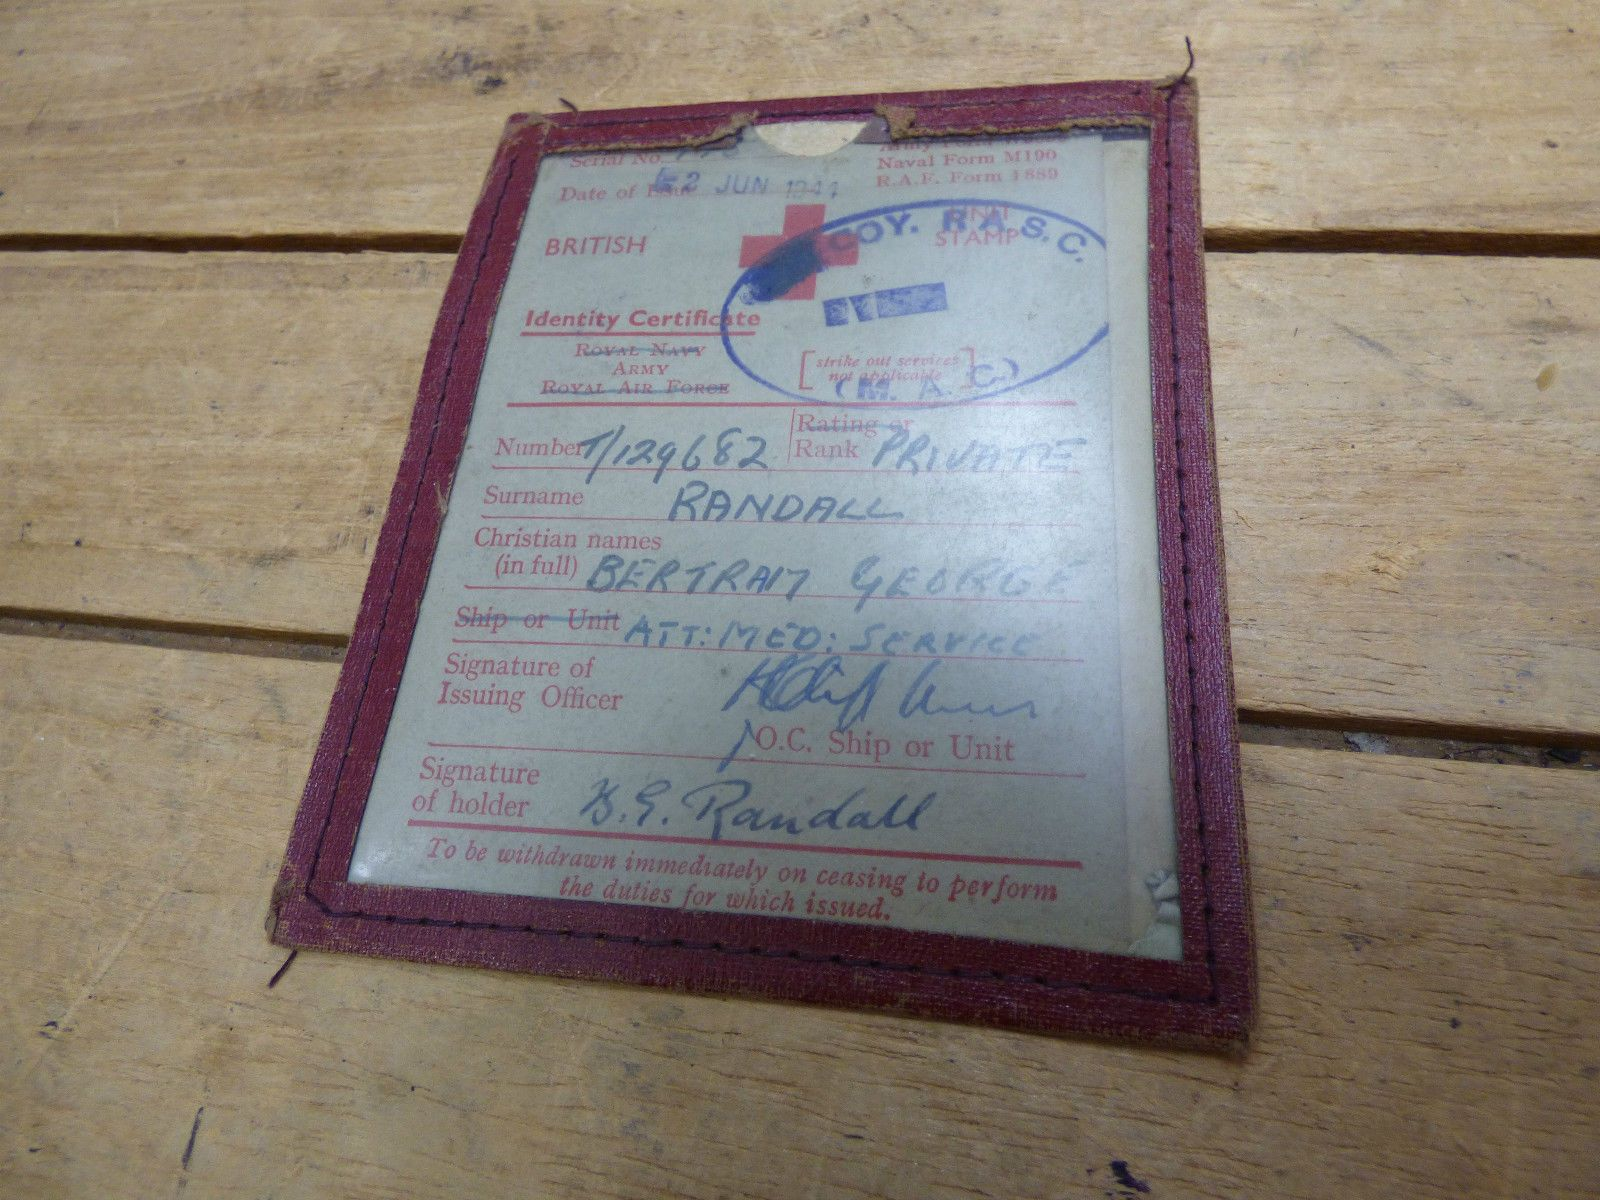 Collection of War Time Memorabilia - Photographs / Pay Books and Letters 1940s…